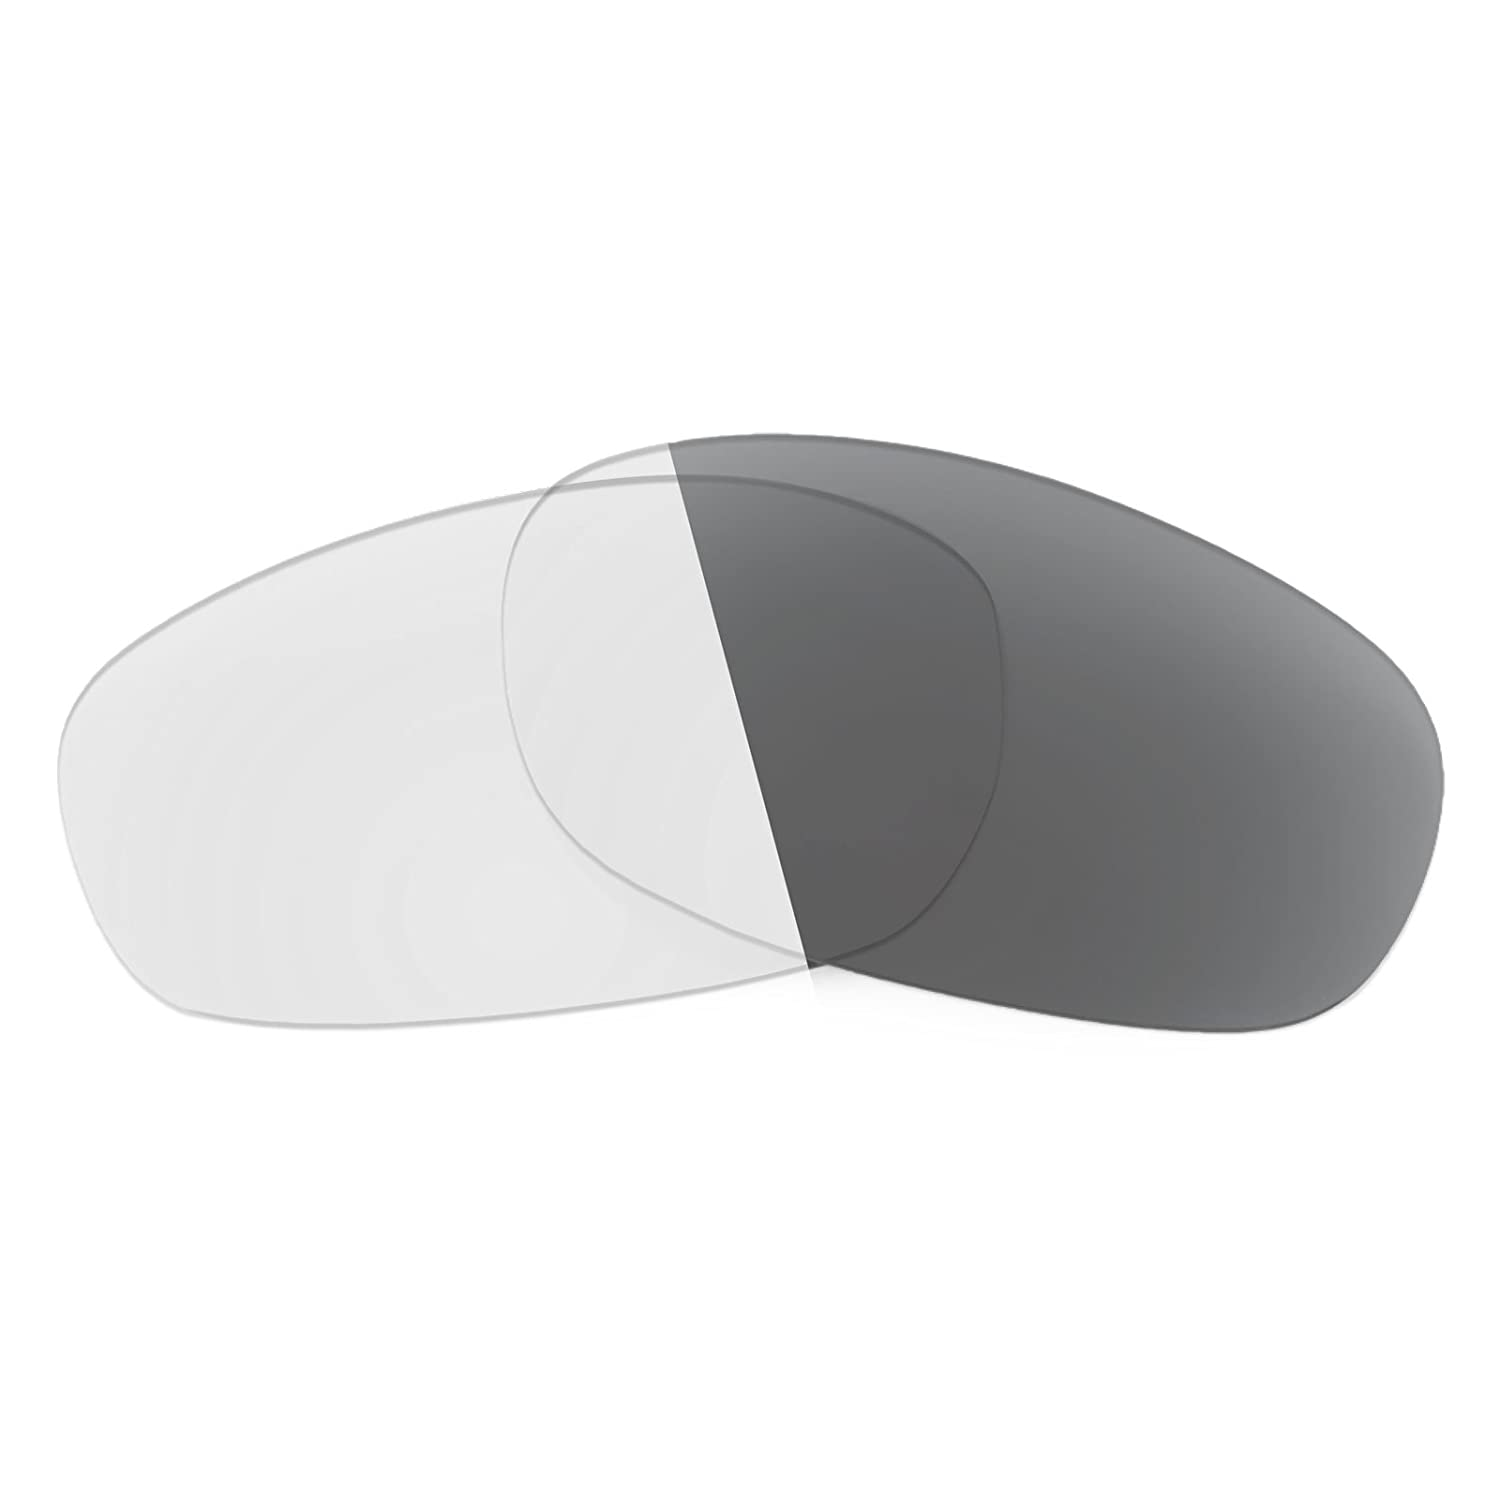 Revant Replacement Lenses for Von Zipper Alysium